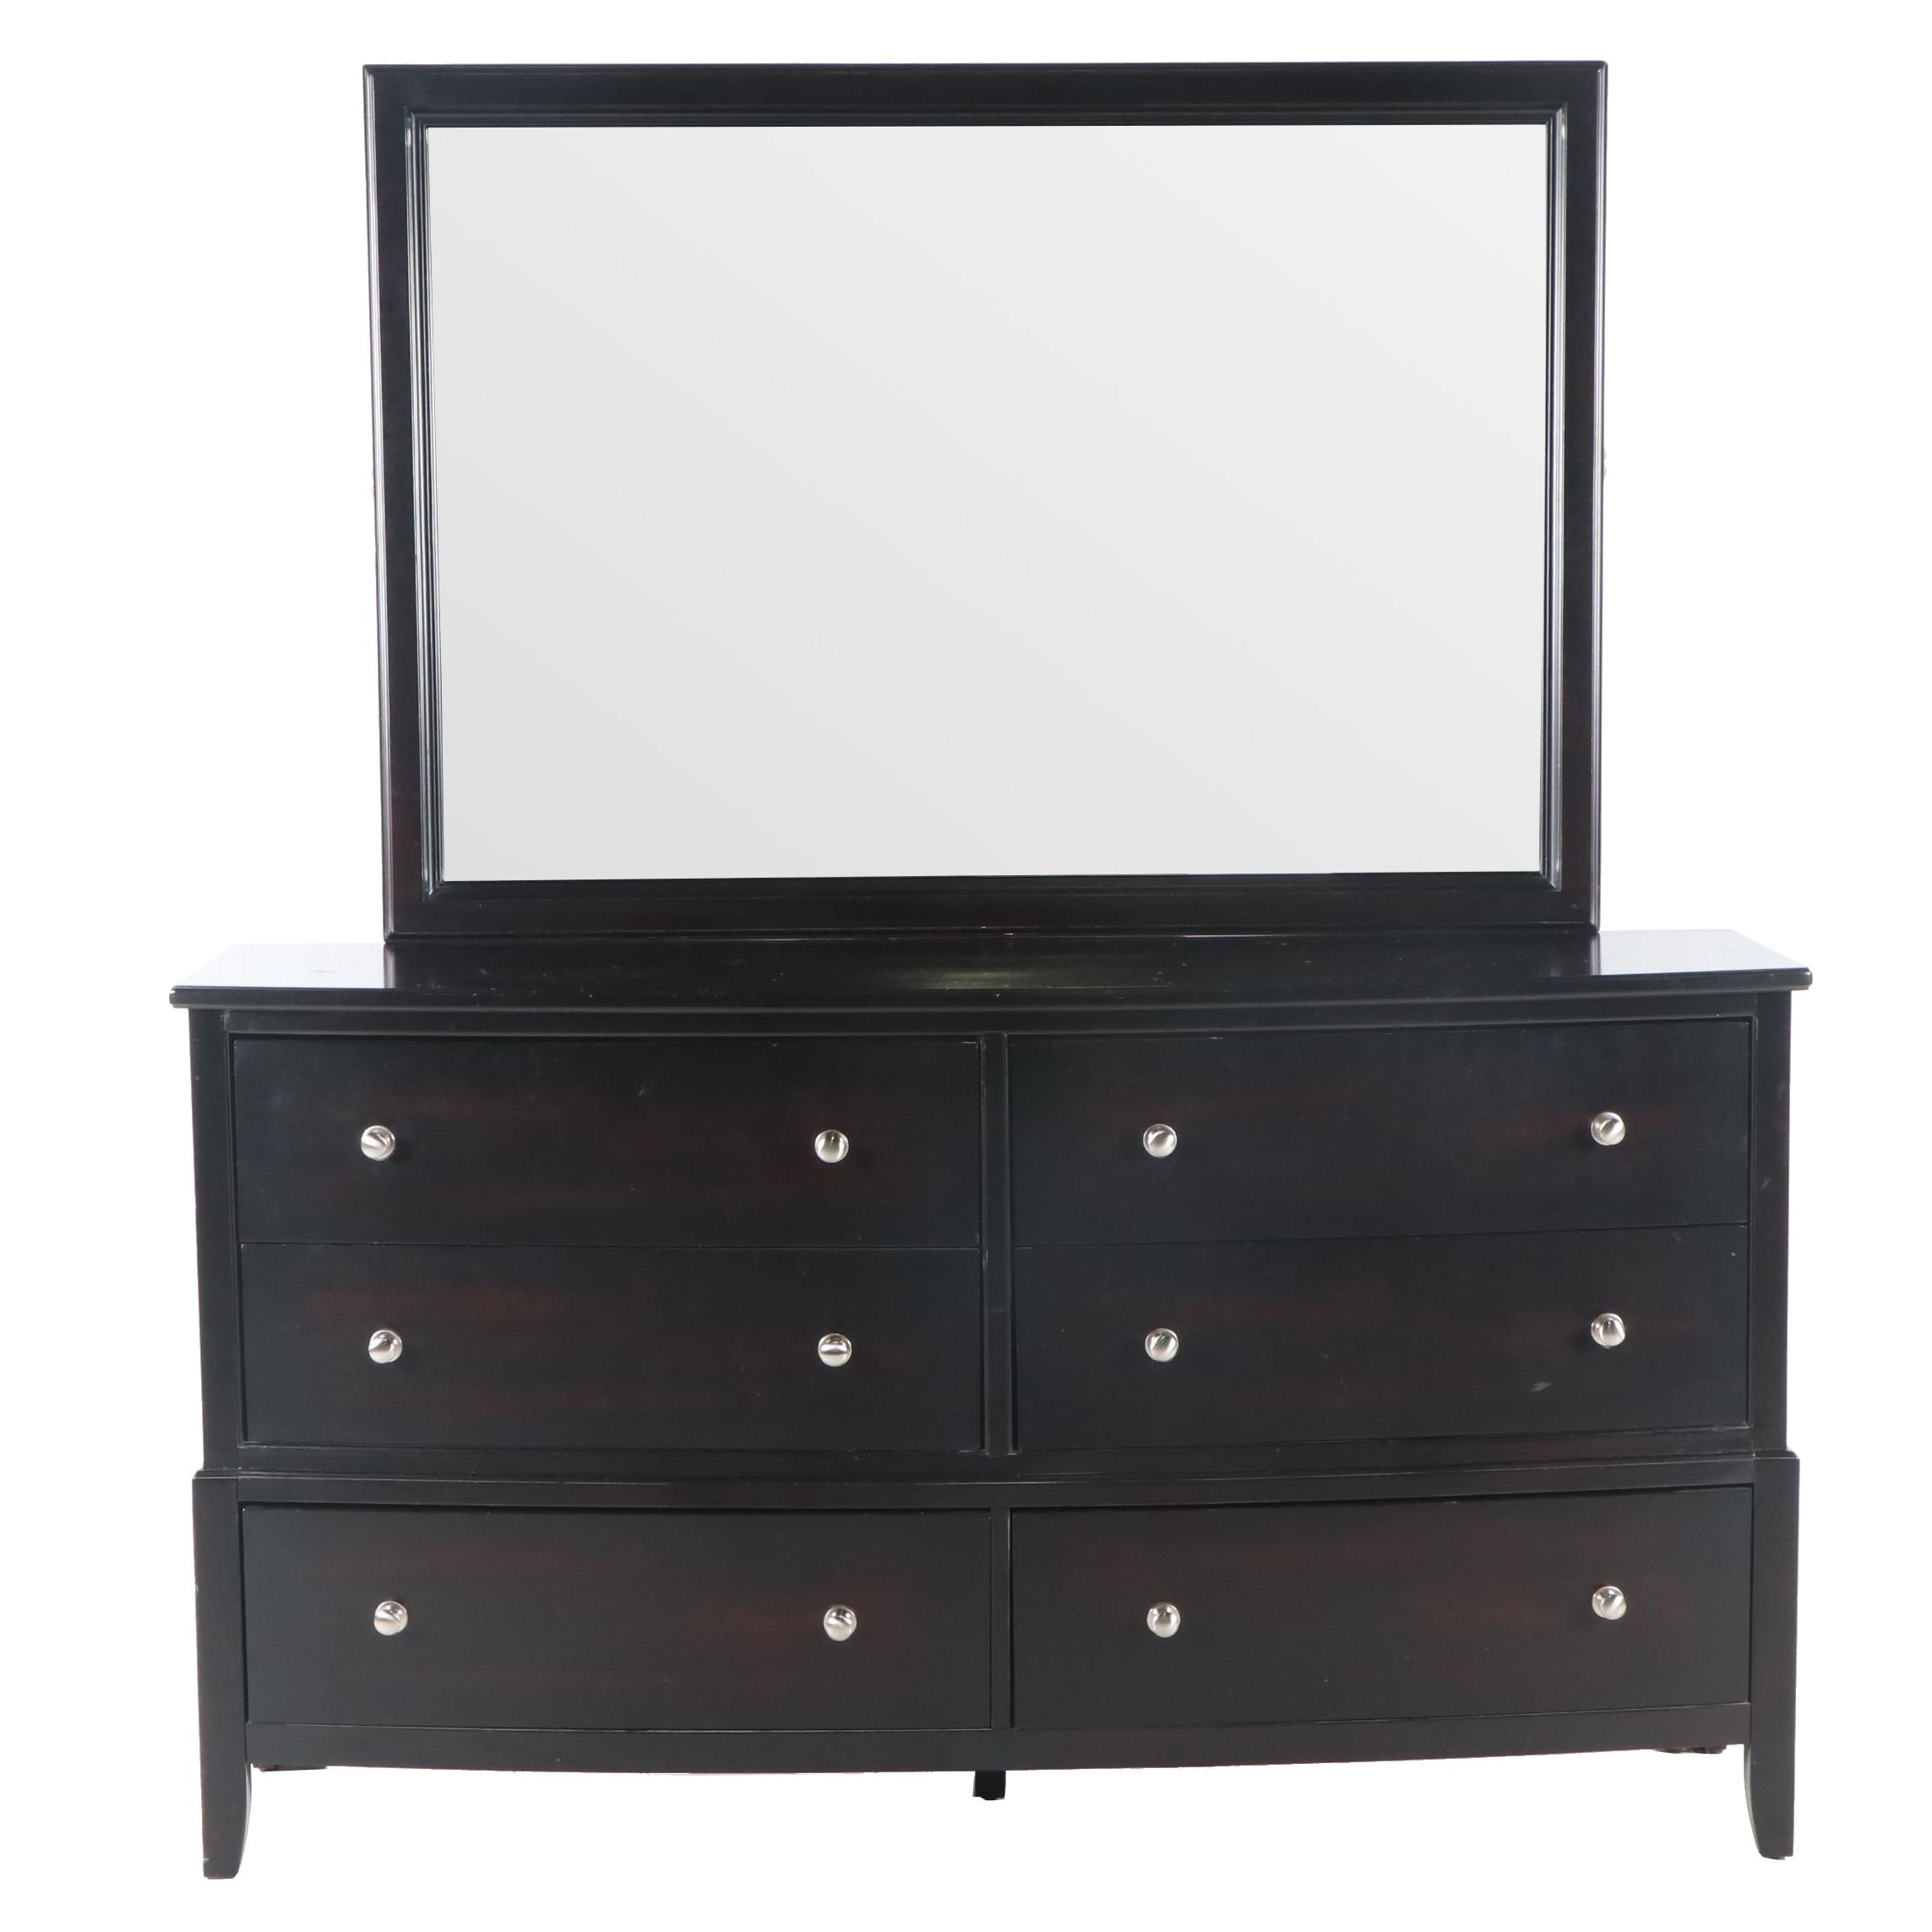 Contemporary Lifestyle Furniture Black Finish Bureau and Mirror